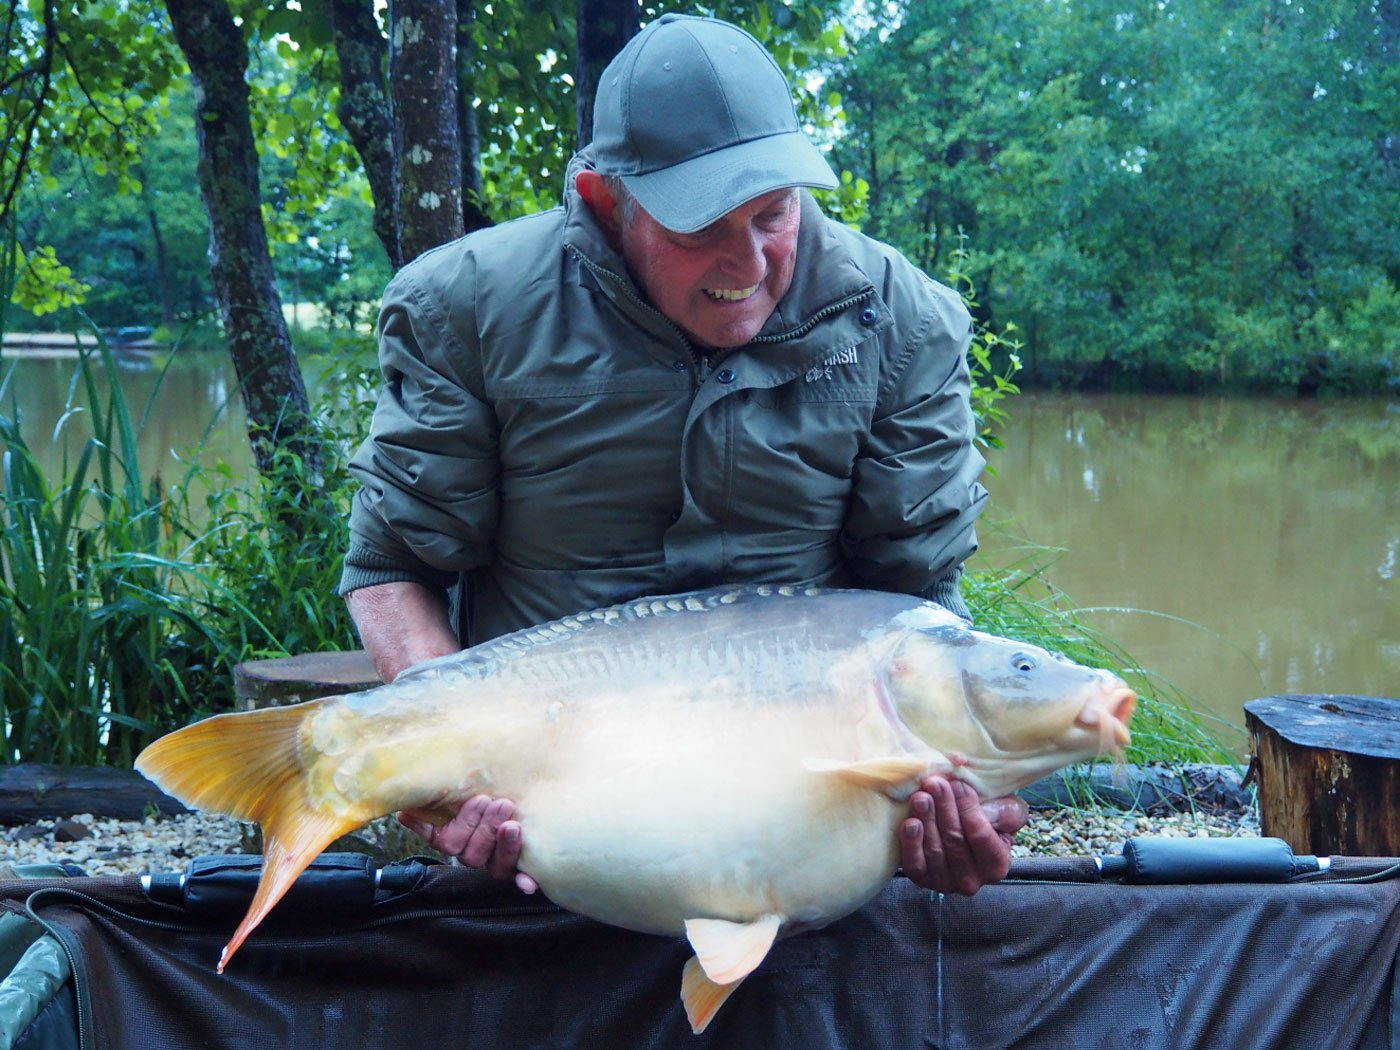 Barry with Merlin at 30lbs